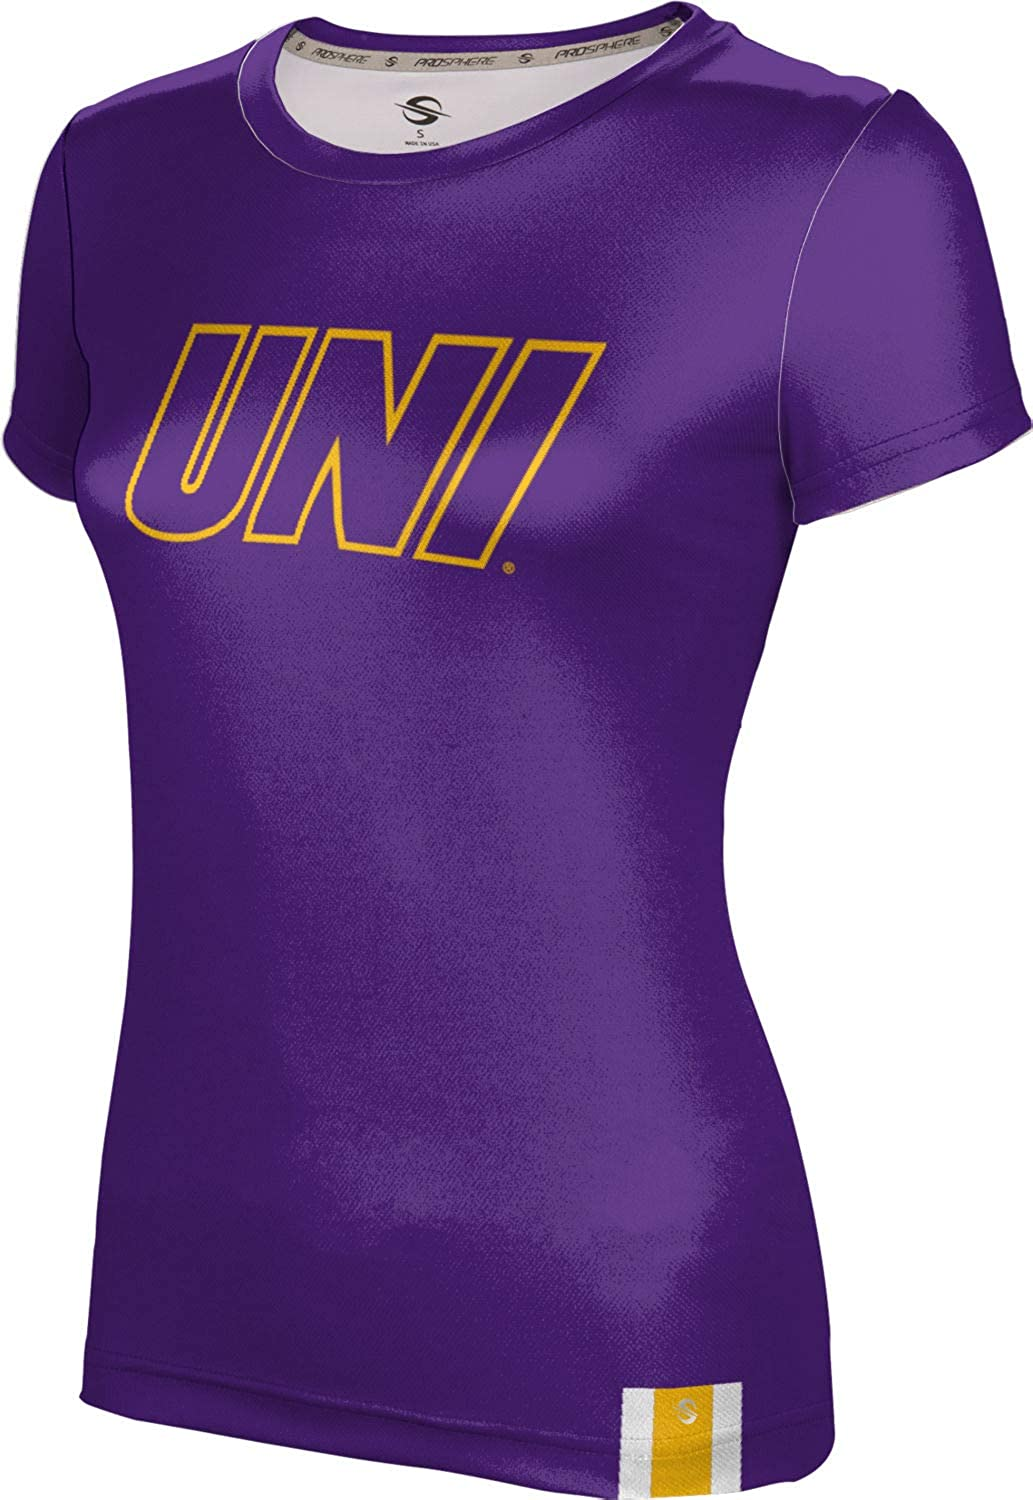 ProSphere University of Northern Women's Performance Cash special price T-Shir Iowa All stores are sold